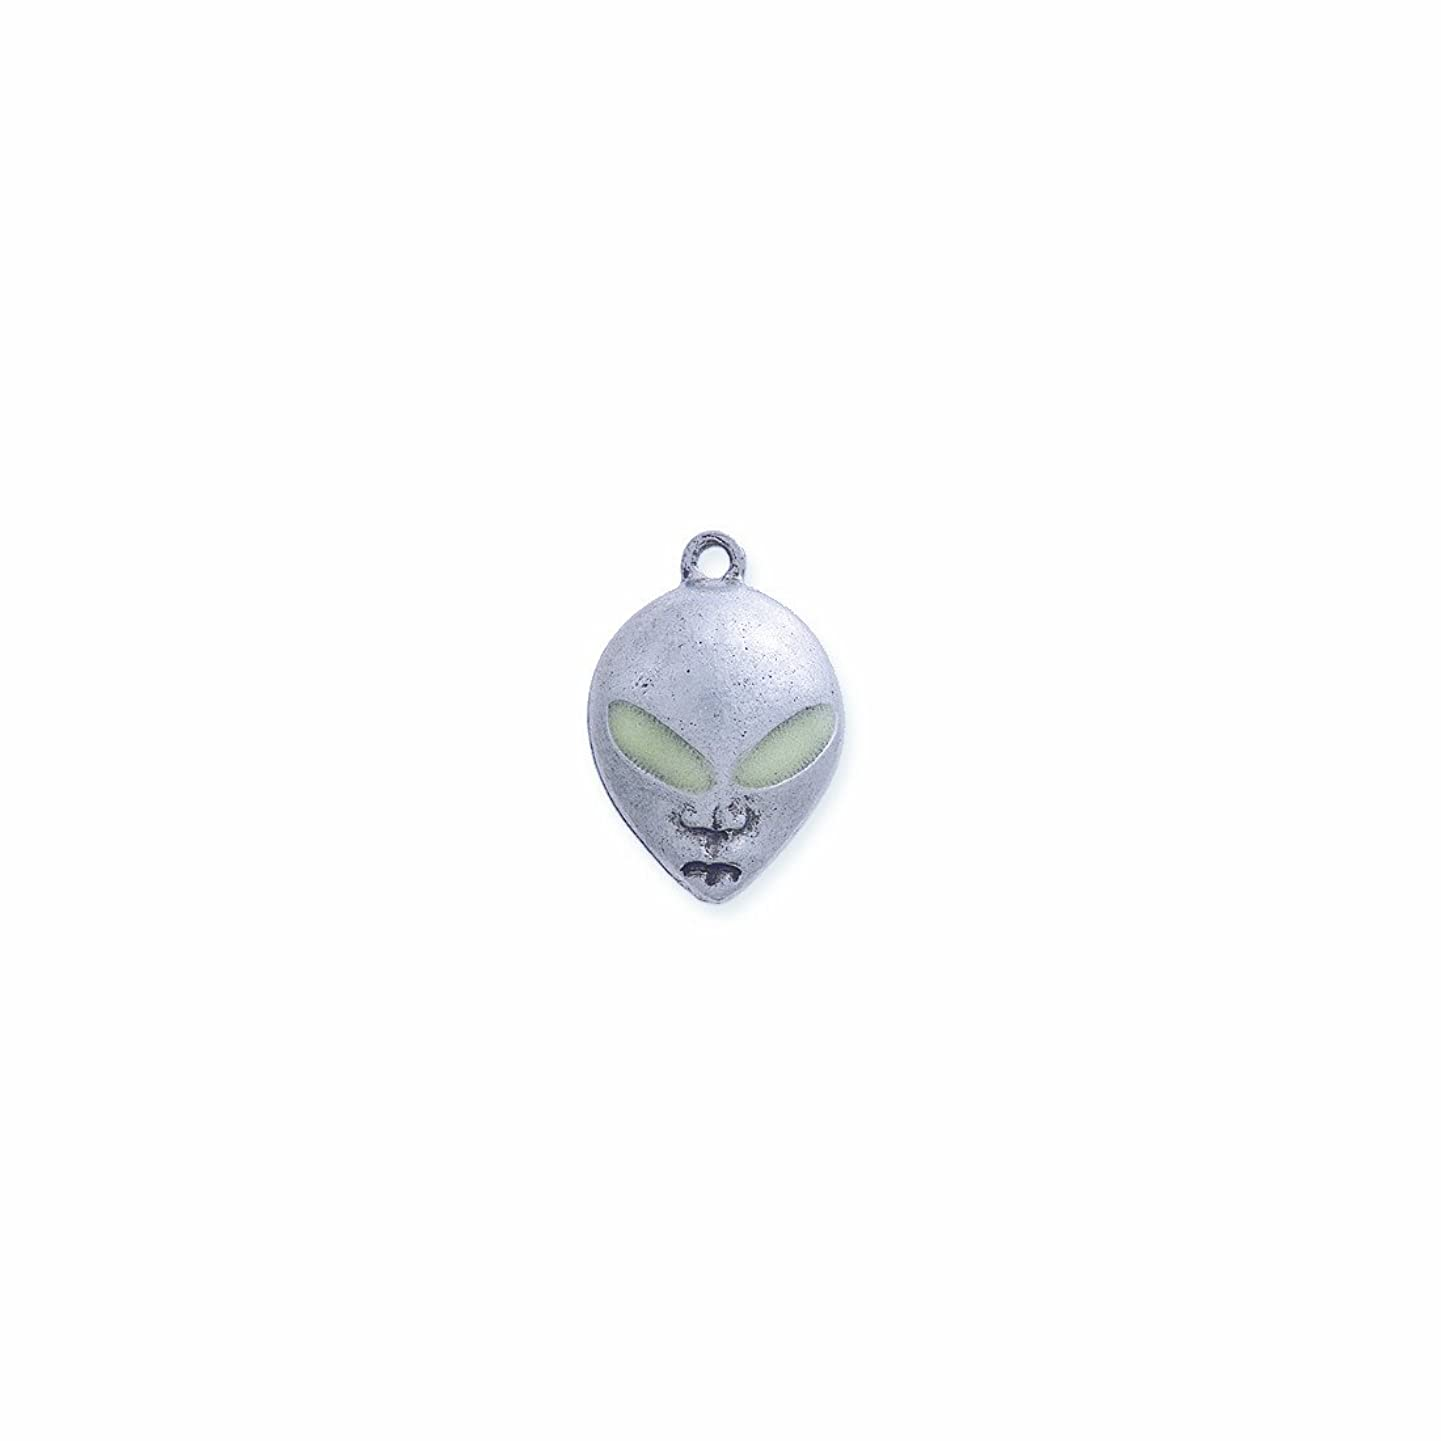 Shipwreck Beads Pewter Alien Assorted Glow Eyes Charm, Silver, 16 by 24mm, 2-Piece